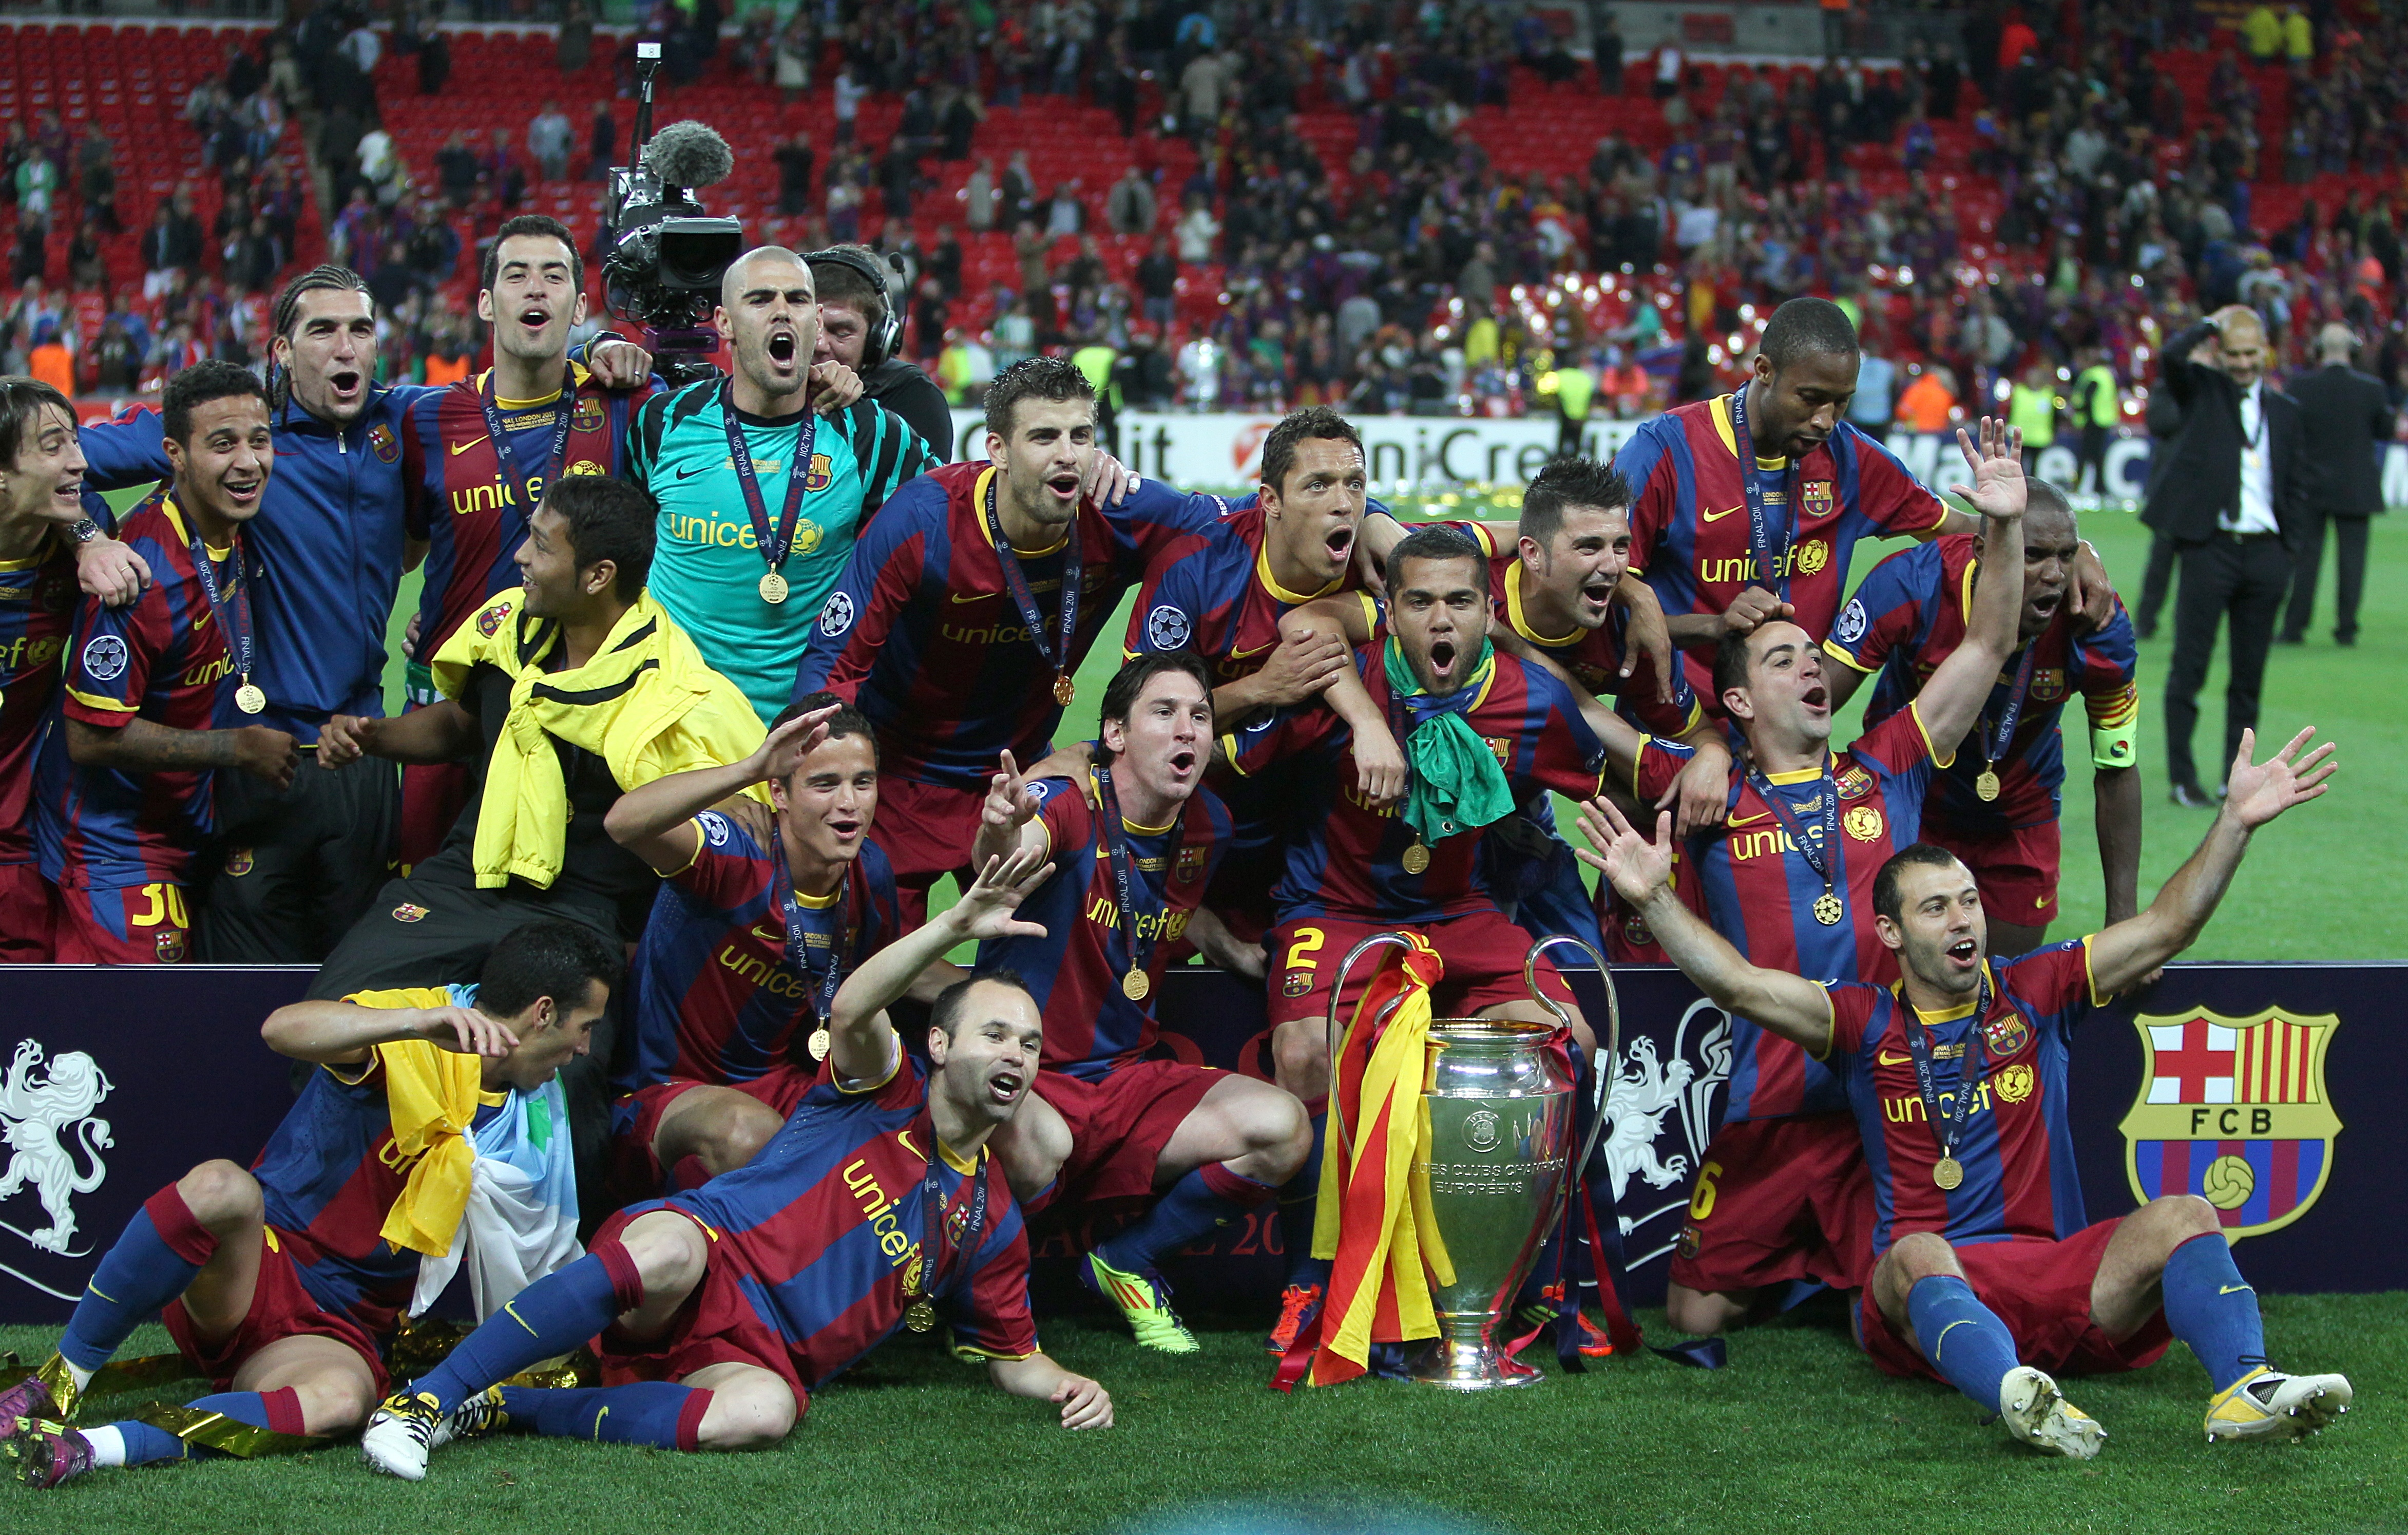 Soccer UEFA Champions League Final Barcelona V Manchester United Wembley Stadium